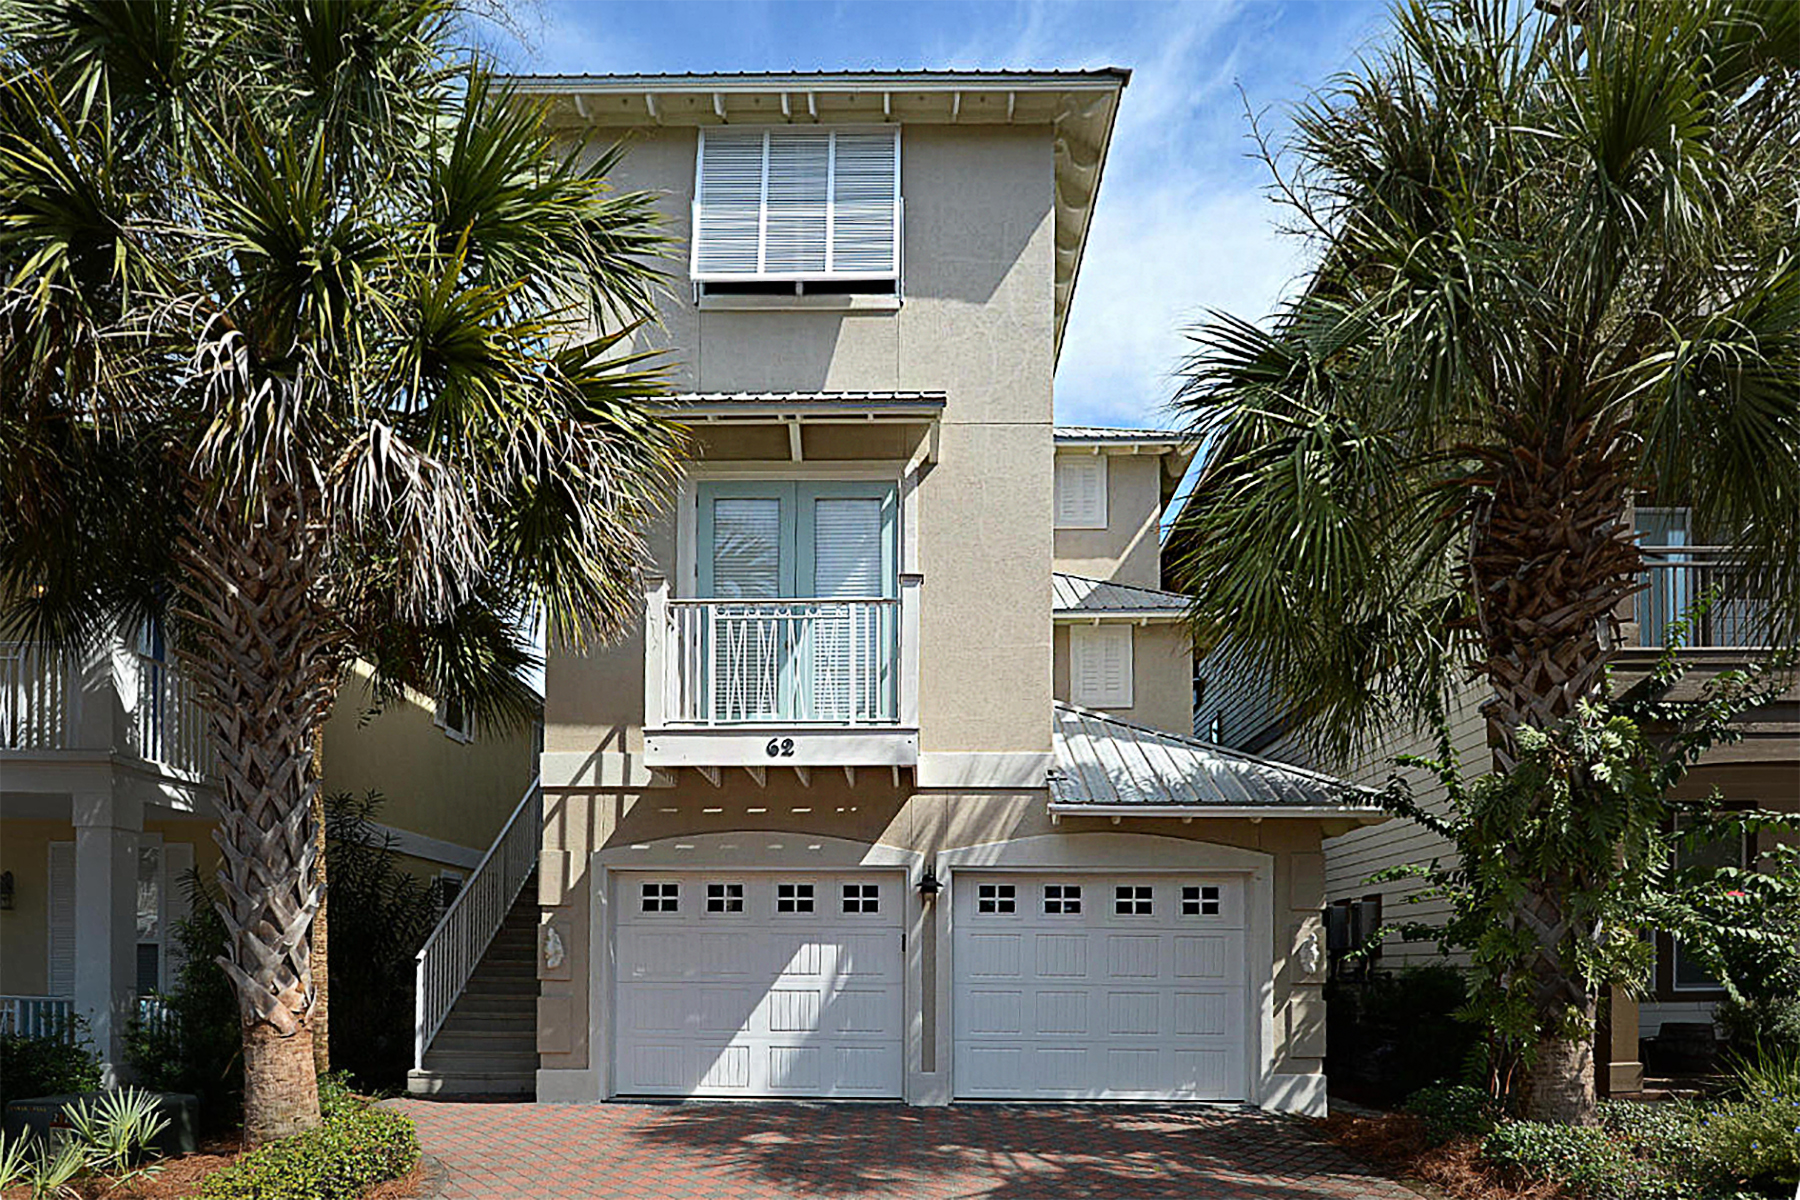 Single Family Home for Sale at FURNISHED RENTAL READY HOME ON THE POOL 62 W Seacrest Beach Boulevard Seacrest Beach, Seacrest, Florida, 32461 United States